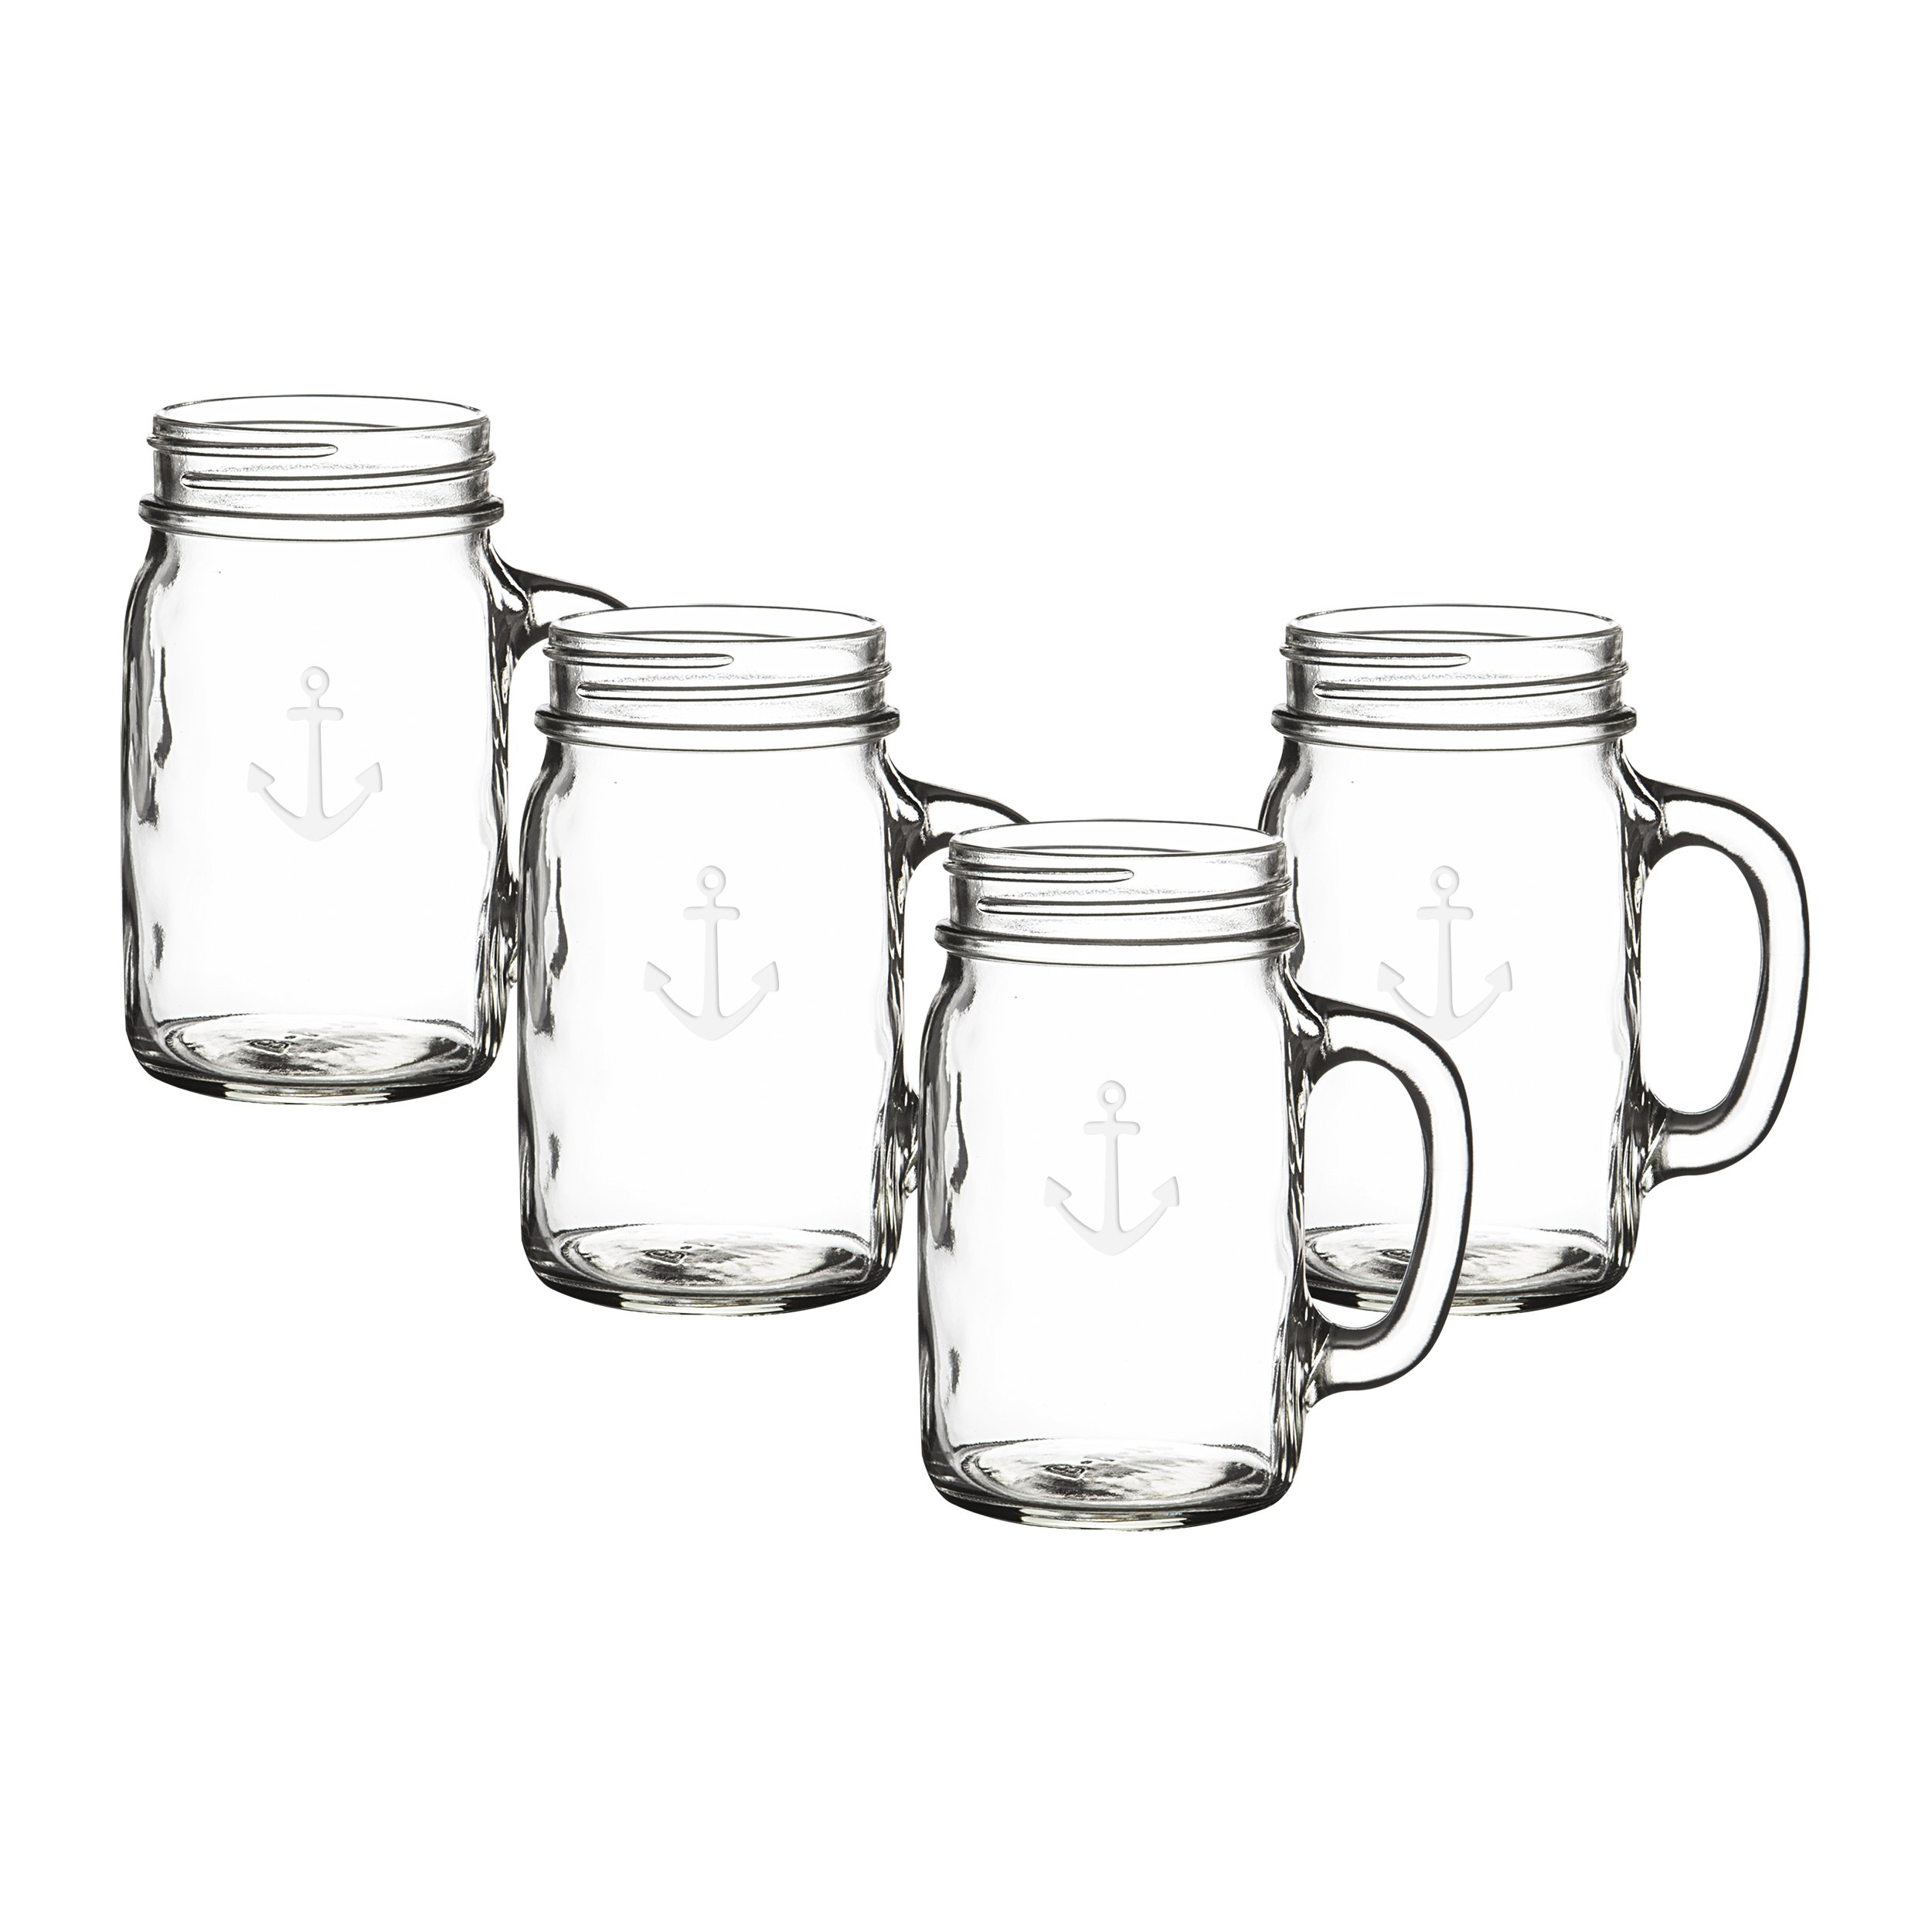 Cathy's Concepts CCA1190 Anchor Old Fashioned Drinking Jars Set Of 4 by Cathy's Concepts (Image #15)